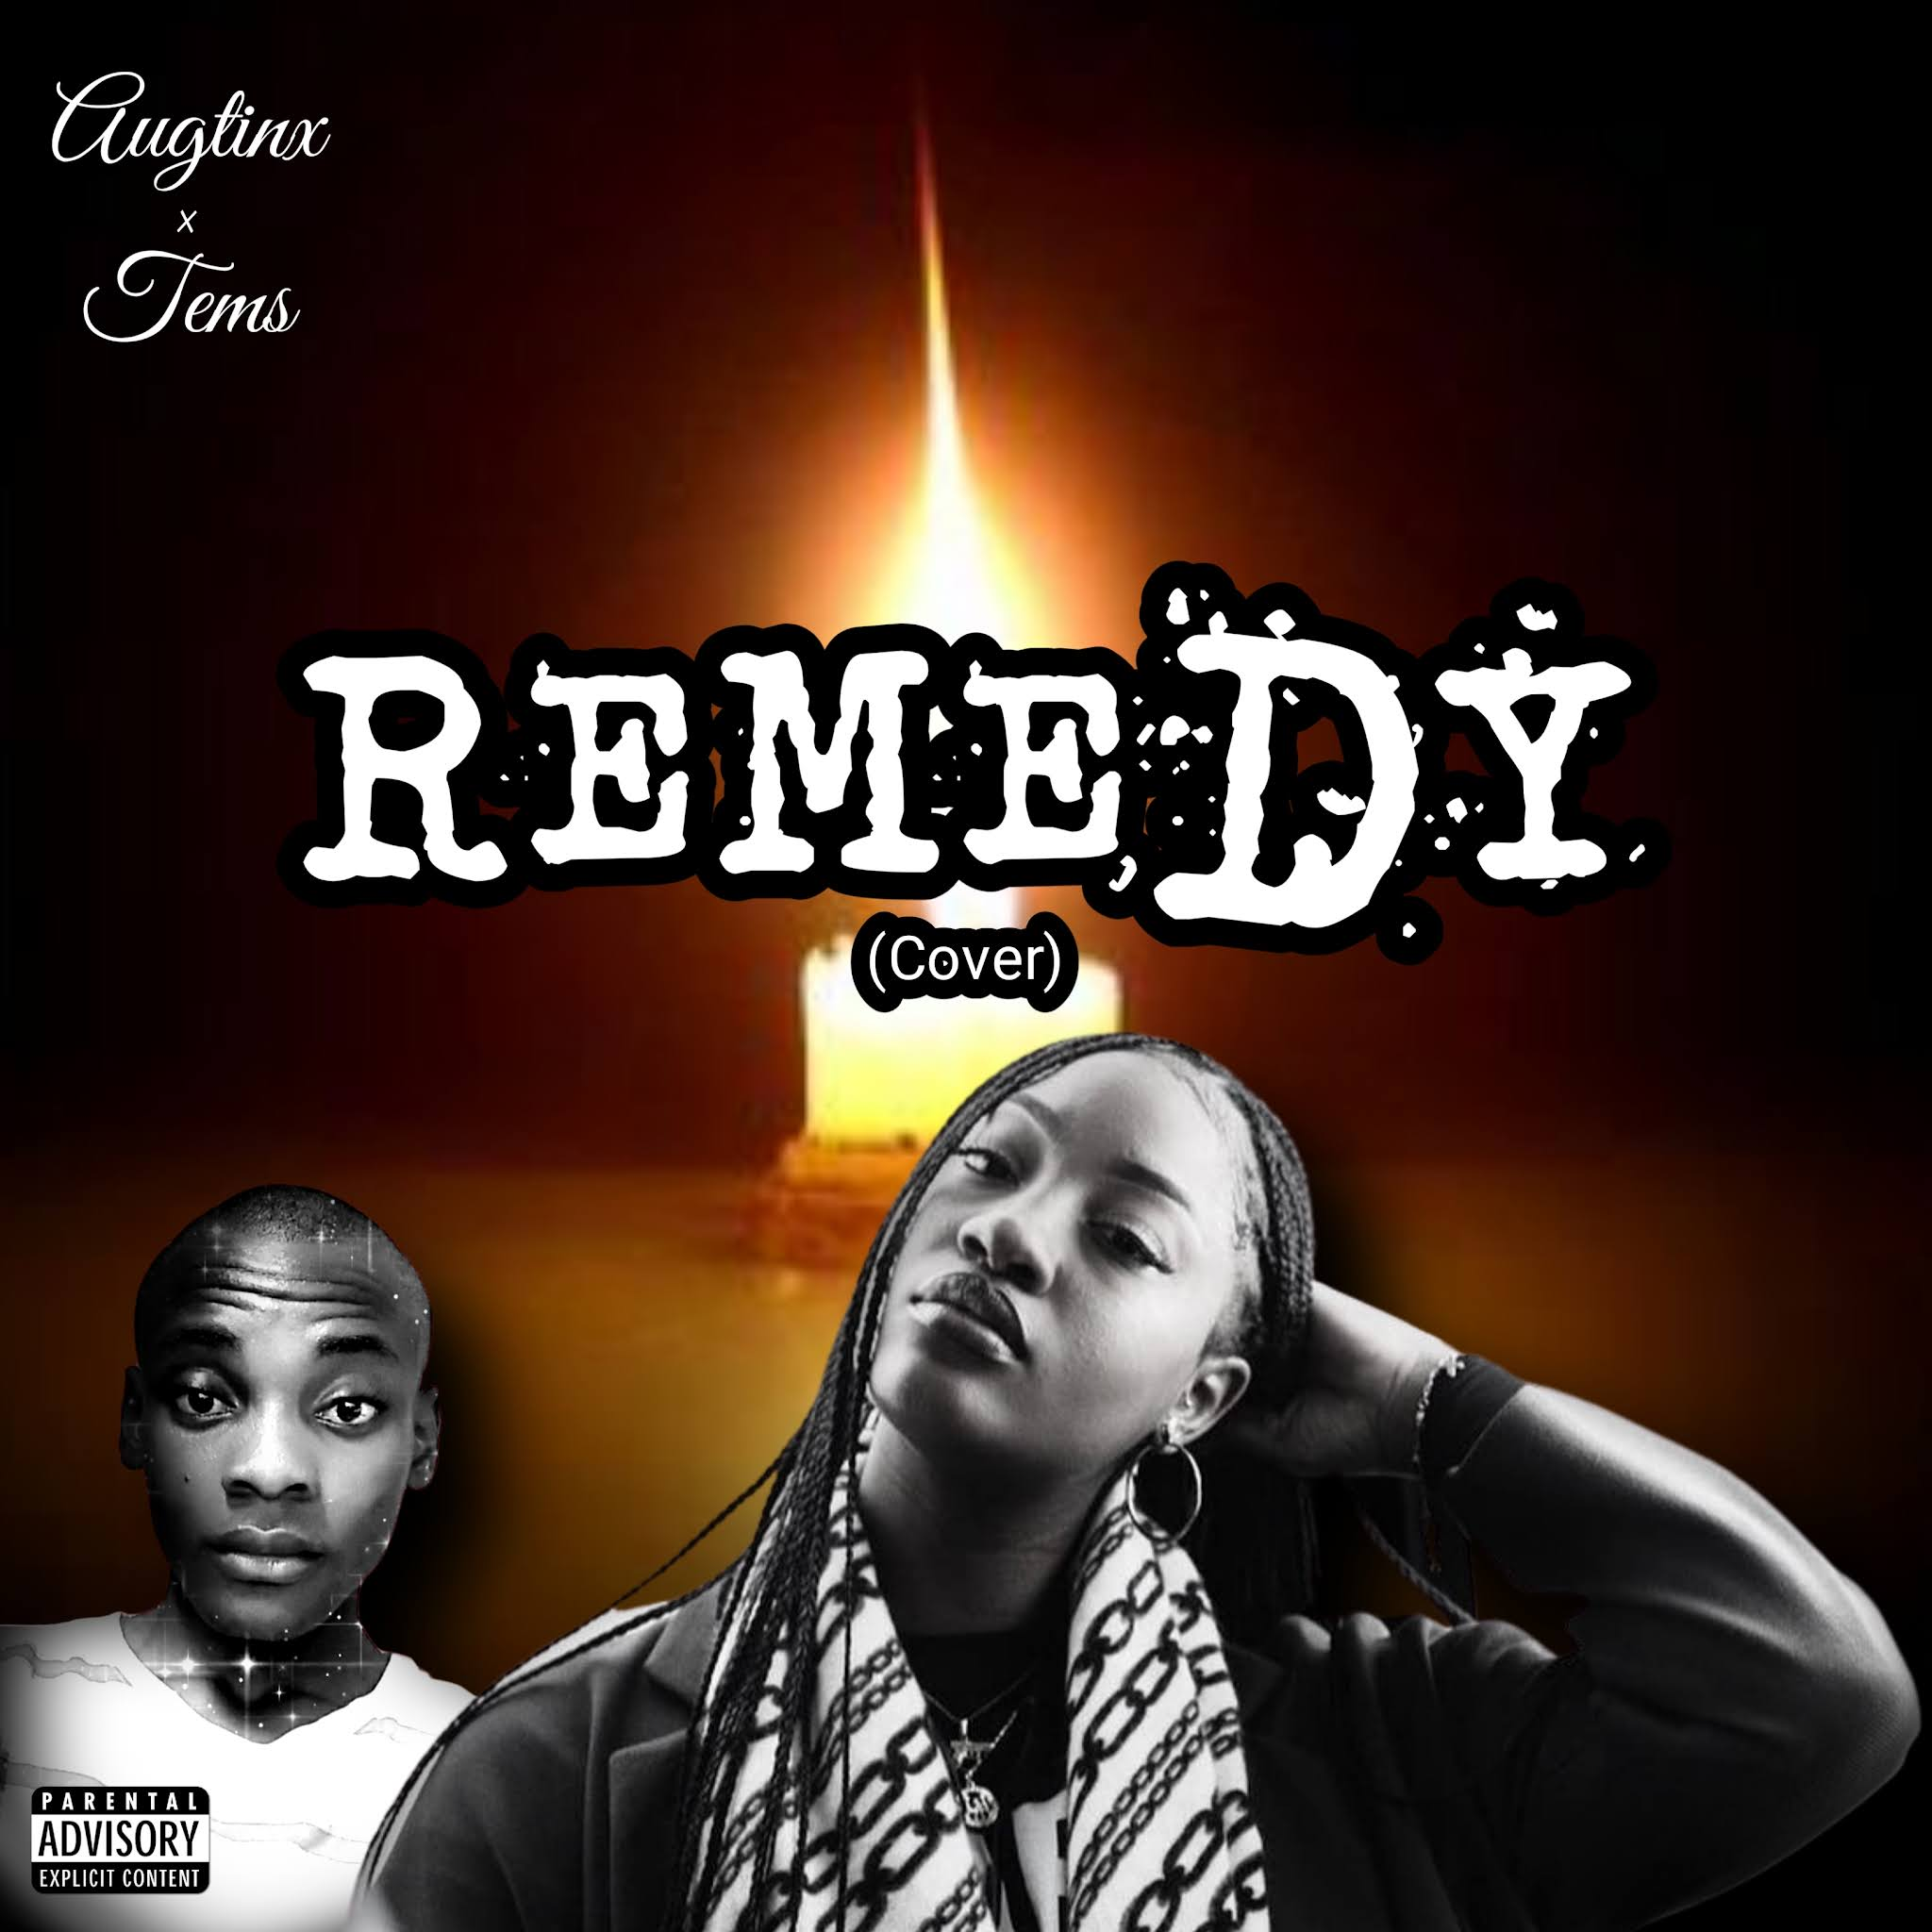 Augtinx - Remedy (Cover) ft. Tems